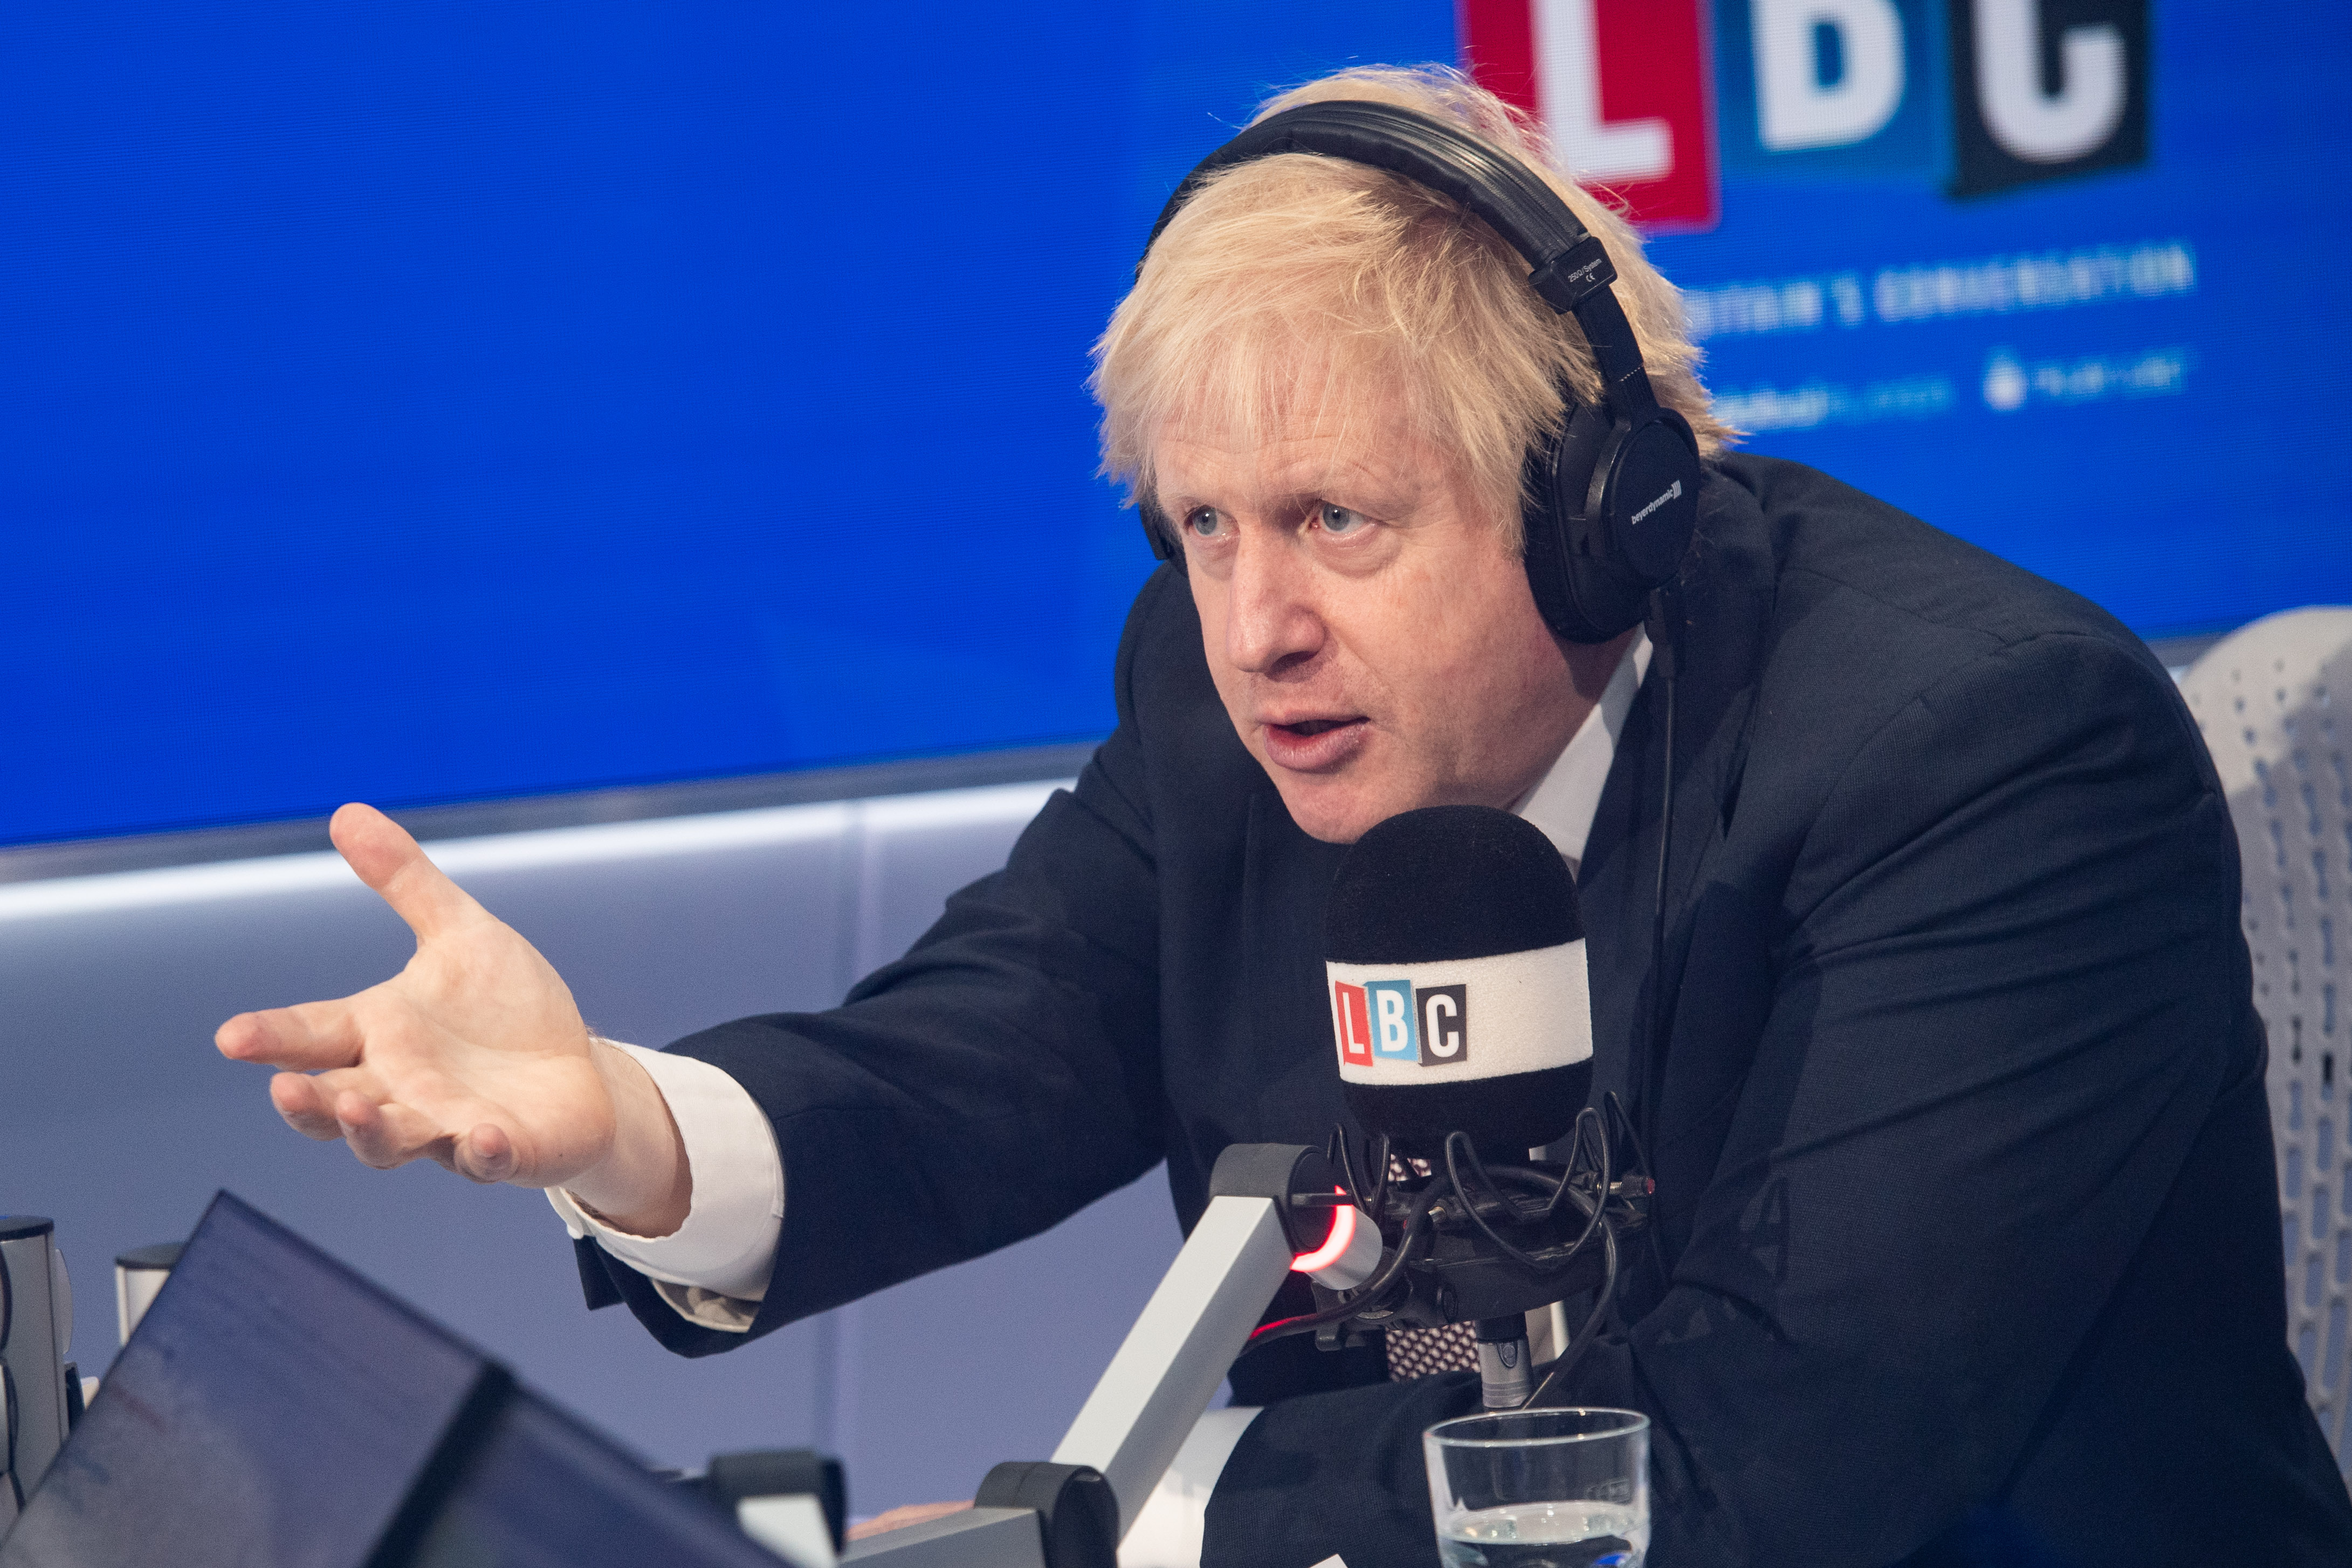 Prime Minister Boris Johnson takes part in a  live phone in on LBC, hosted by breakfast presenter Nick Ferrari, at their studios in central London .Picture date: Friday November 29, 2019. Photo credit should read: Matt Crossick/Empics